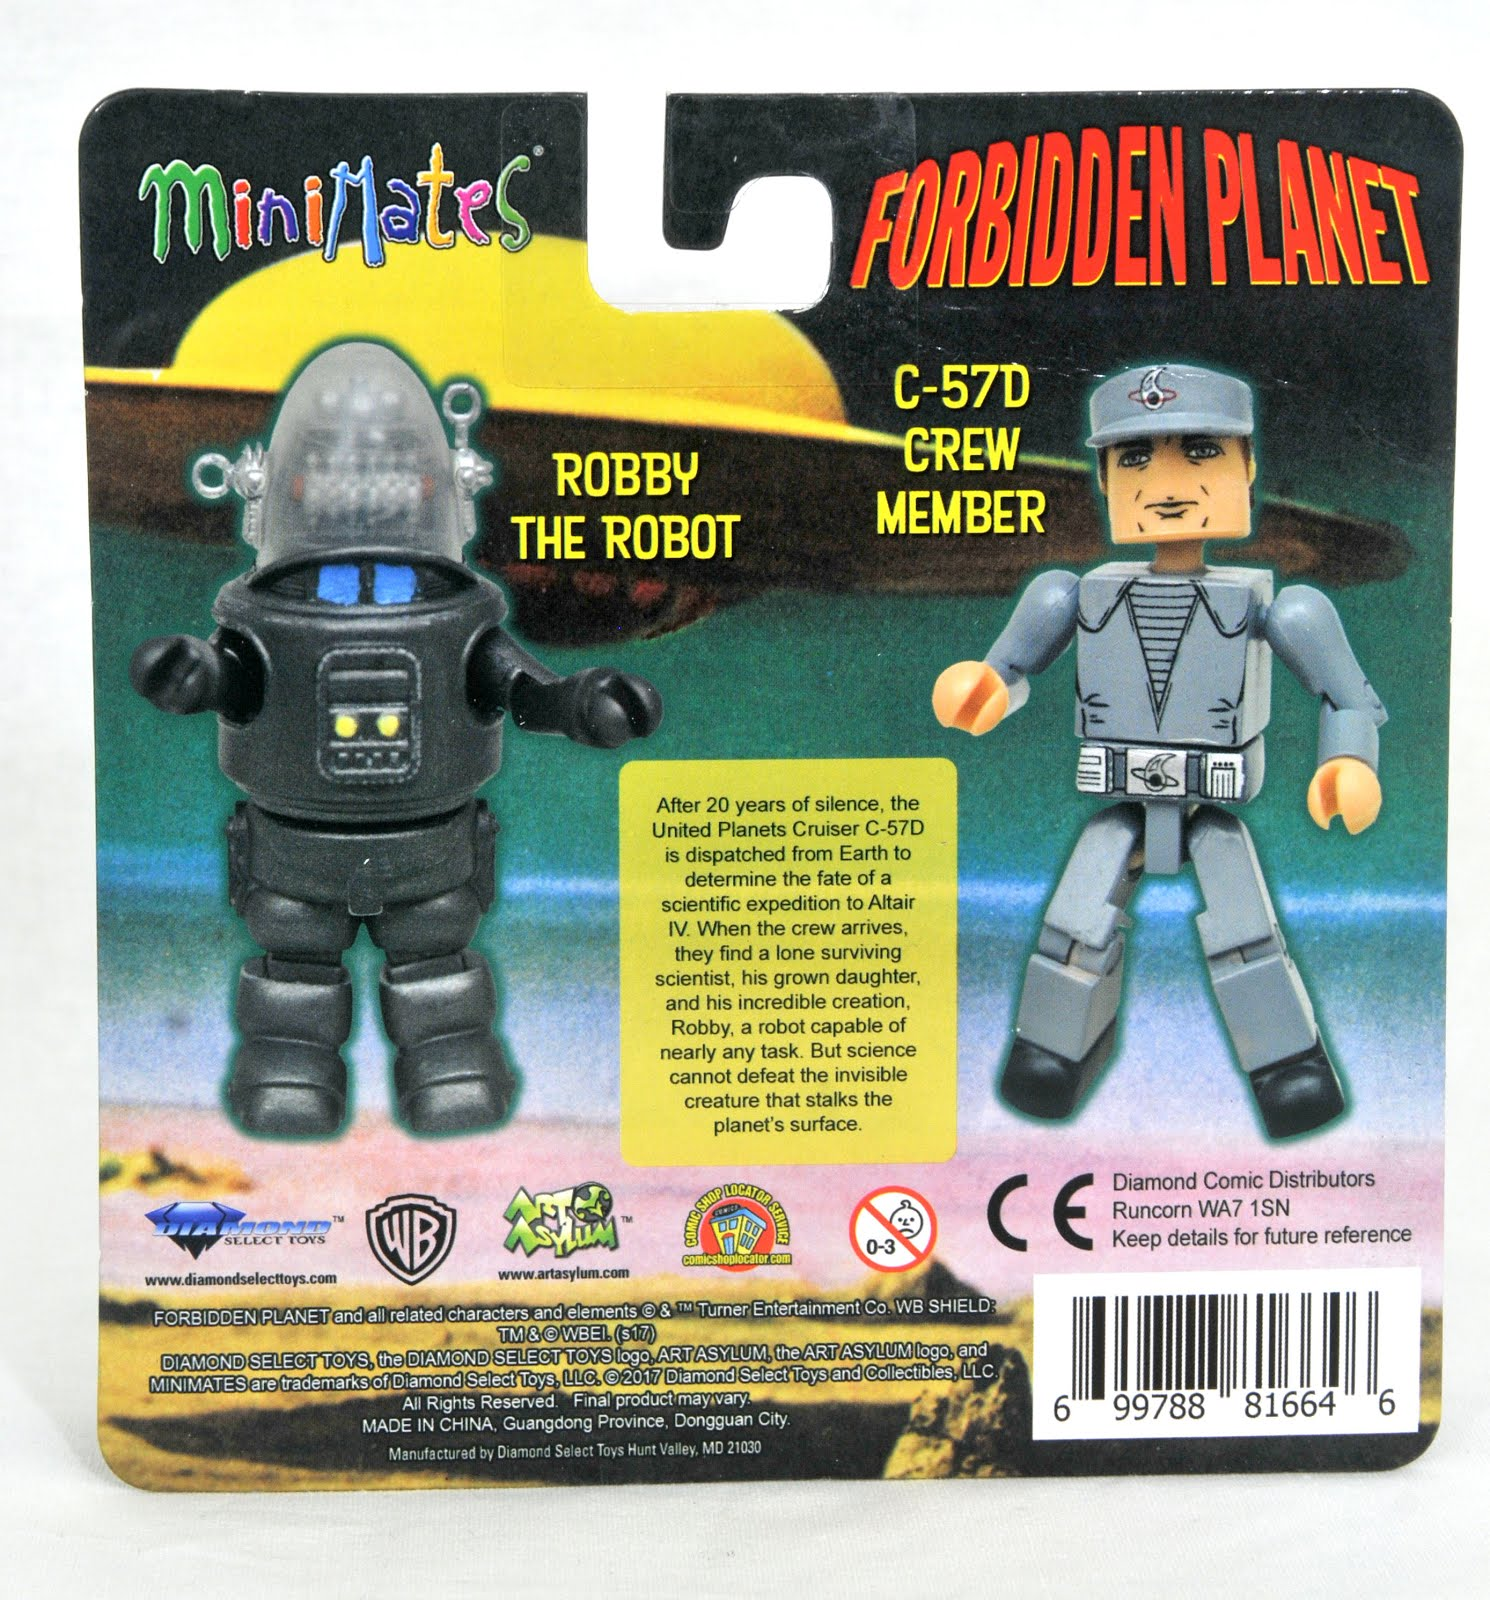 Forbidden Planet Minimates Robby the Robot /& C-57D Crew Member 2-Pack